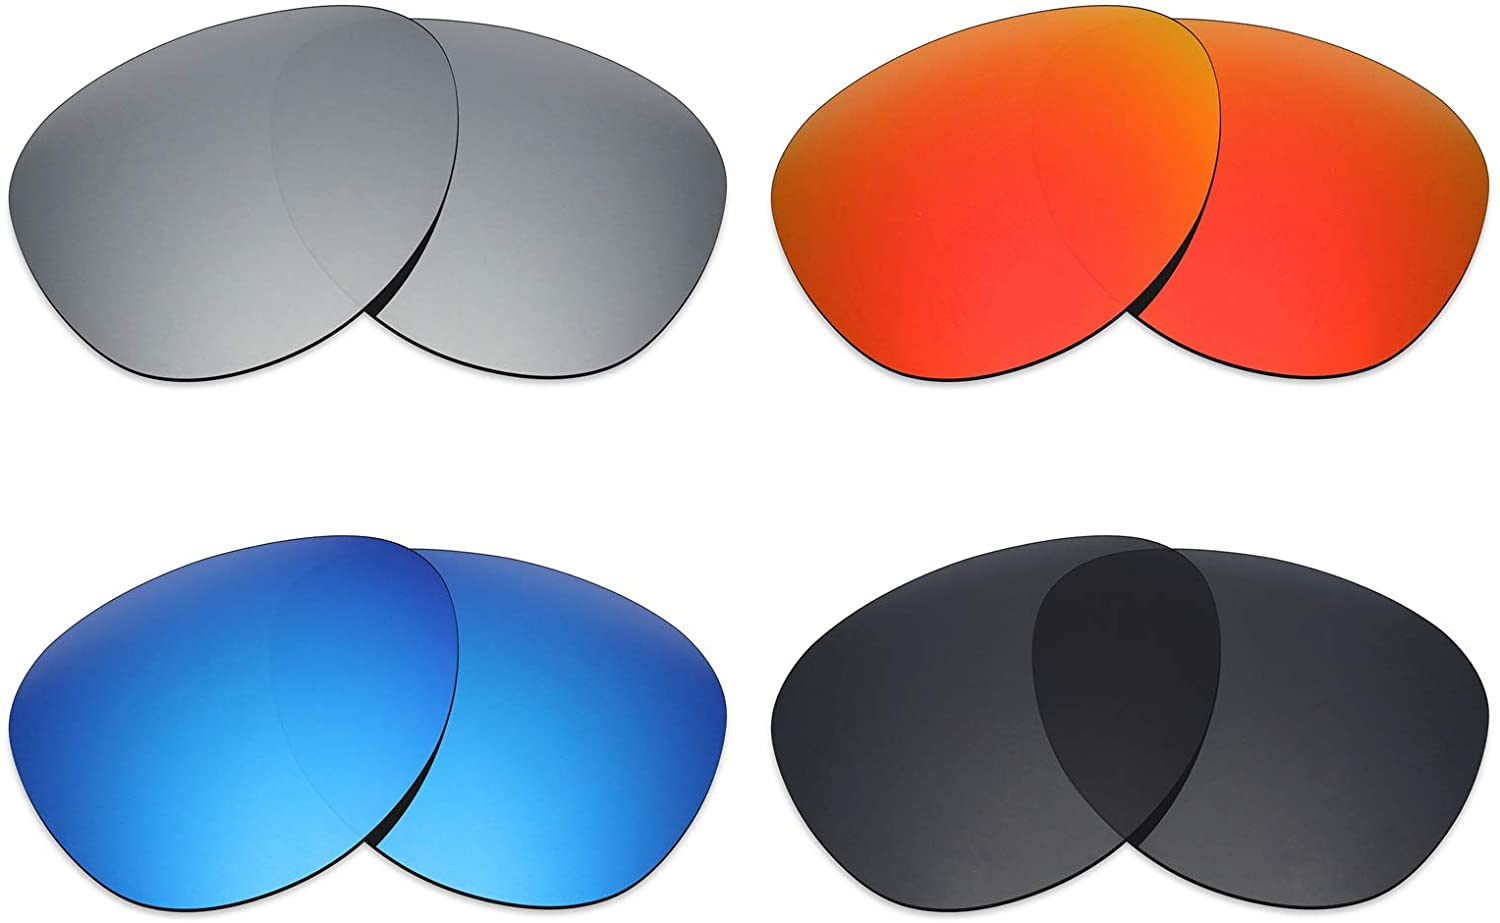 Mryok 4 Pair Polarized Replacement Lenses for Oakley Elmont M Sunglass - Stealth Black/Fire Red/Ice Blue/Silver Titanium